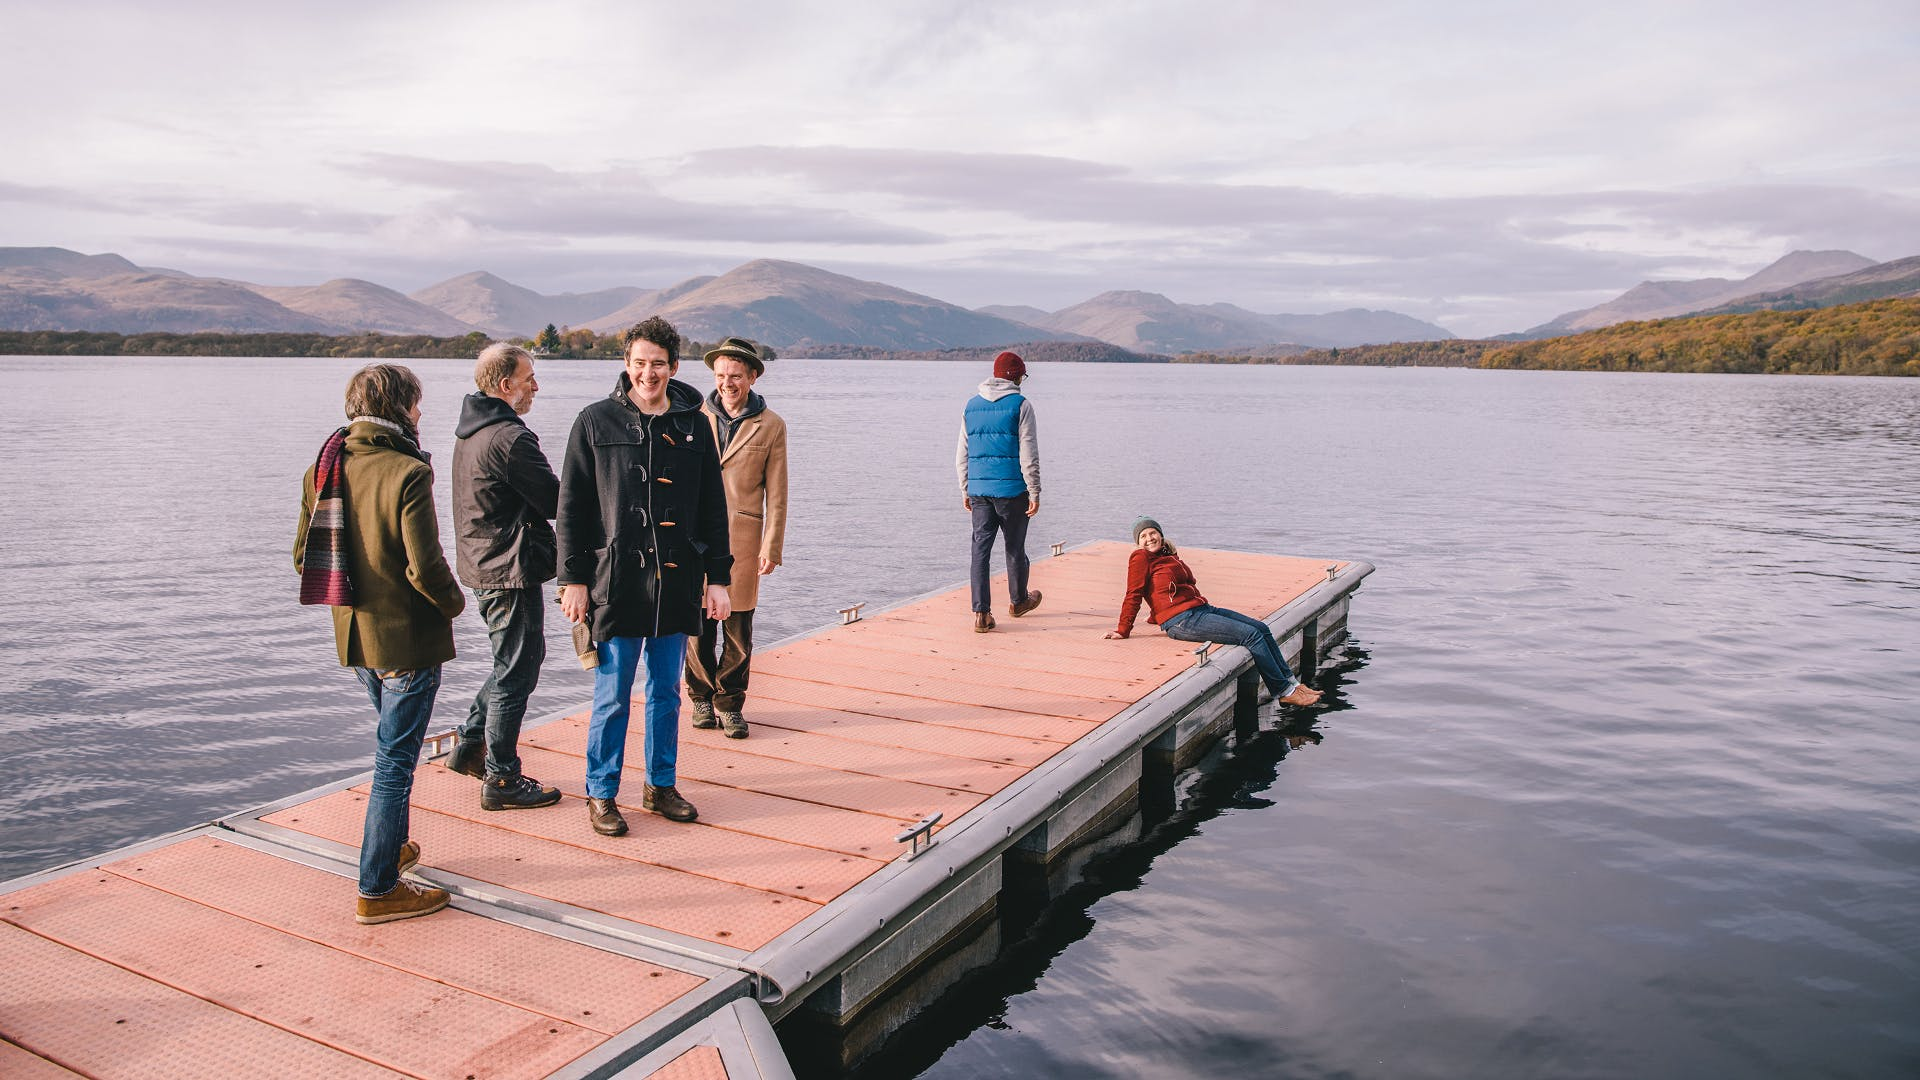 Sold Out: Belle And Sebastian